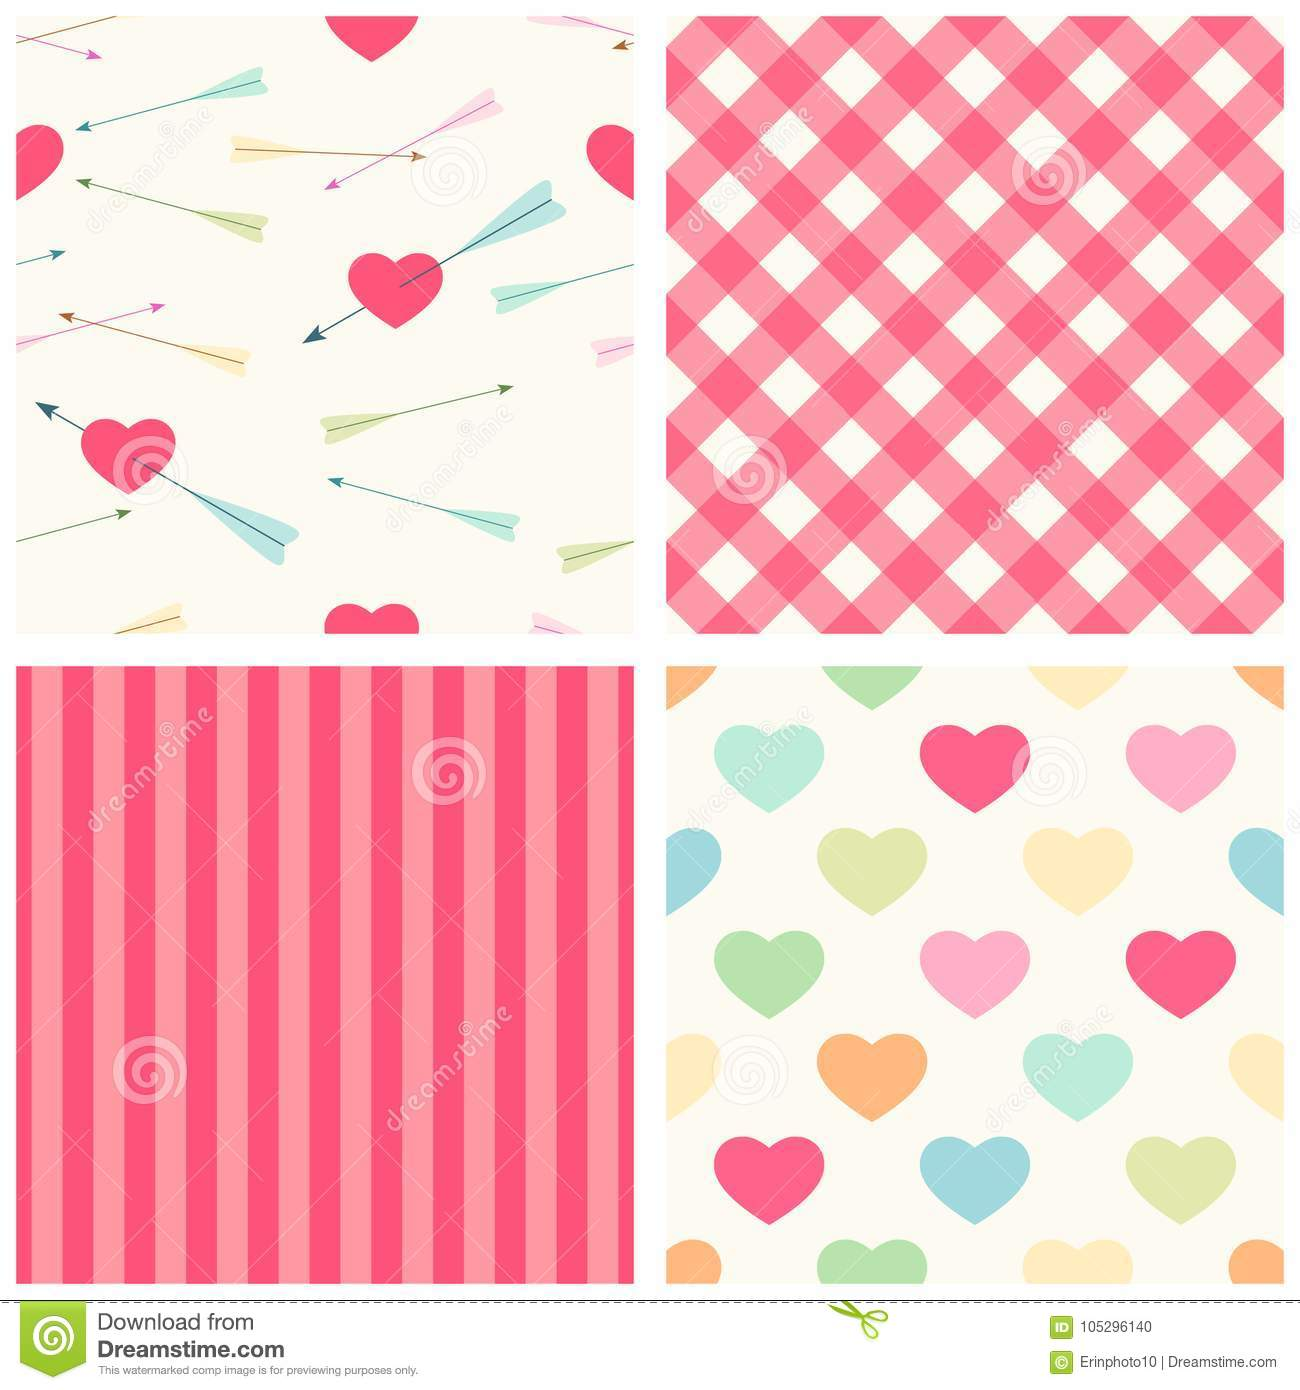 Cute set of Valentine`s Day seamless patterns in retro style with hearts and arrows